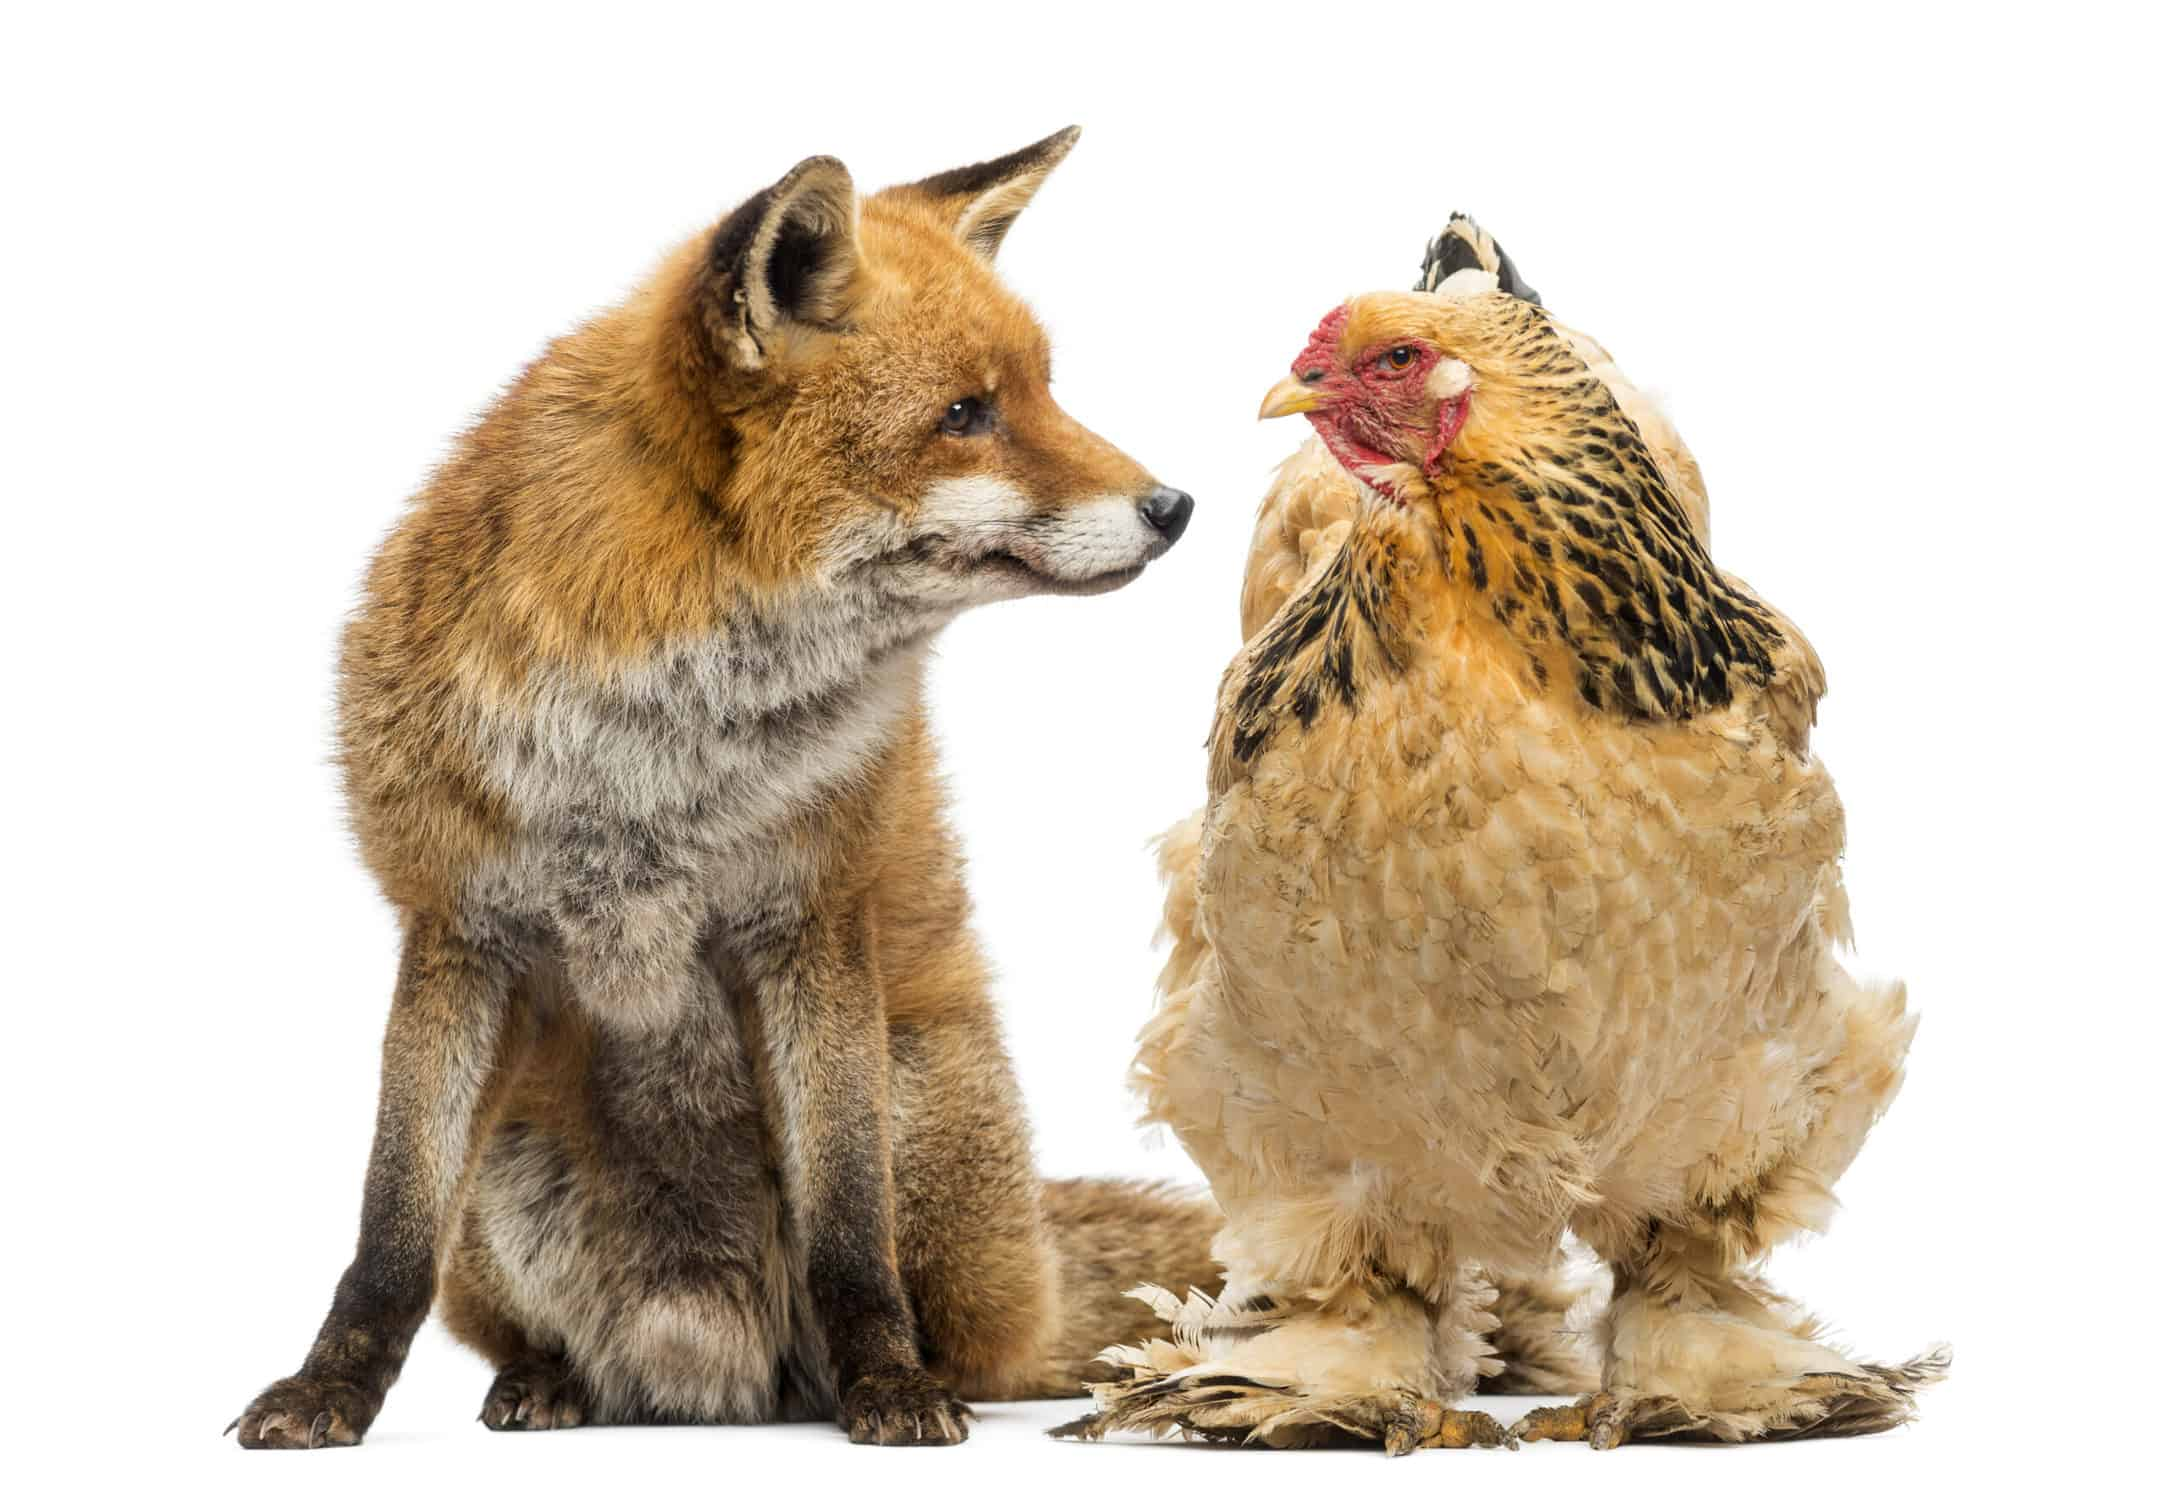 How To Prevent and Manage Common Backyard Chicken Predators